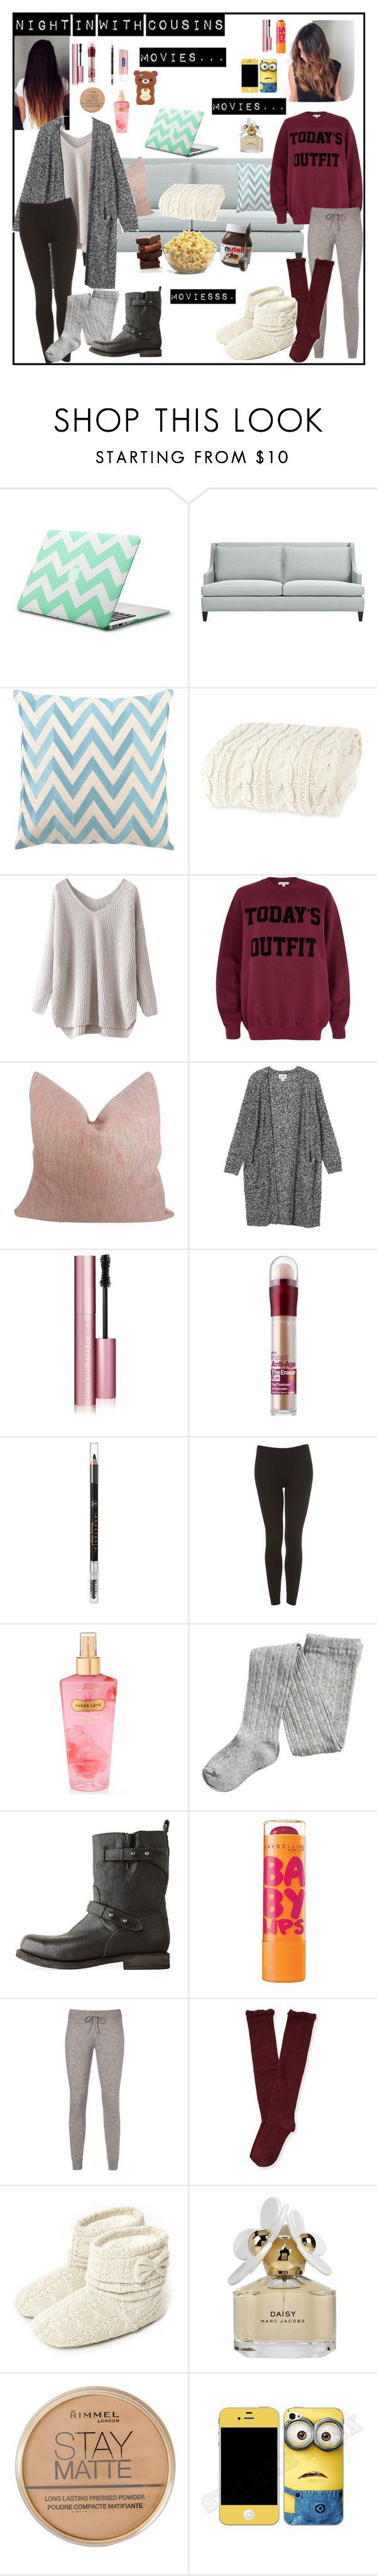 """Night in with cousins...movies"" by cats5 ❤ liked on Polyvore featuring Crate and Barrel, D.L. Rhein, River Island, Monki, Too Faced Cosmetics, Maybelline, Anastasia Beverly Hills, Topshop, Nivea and Victoria's Secret"